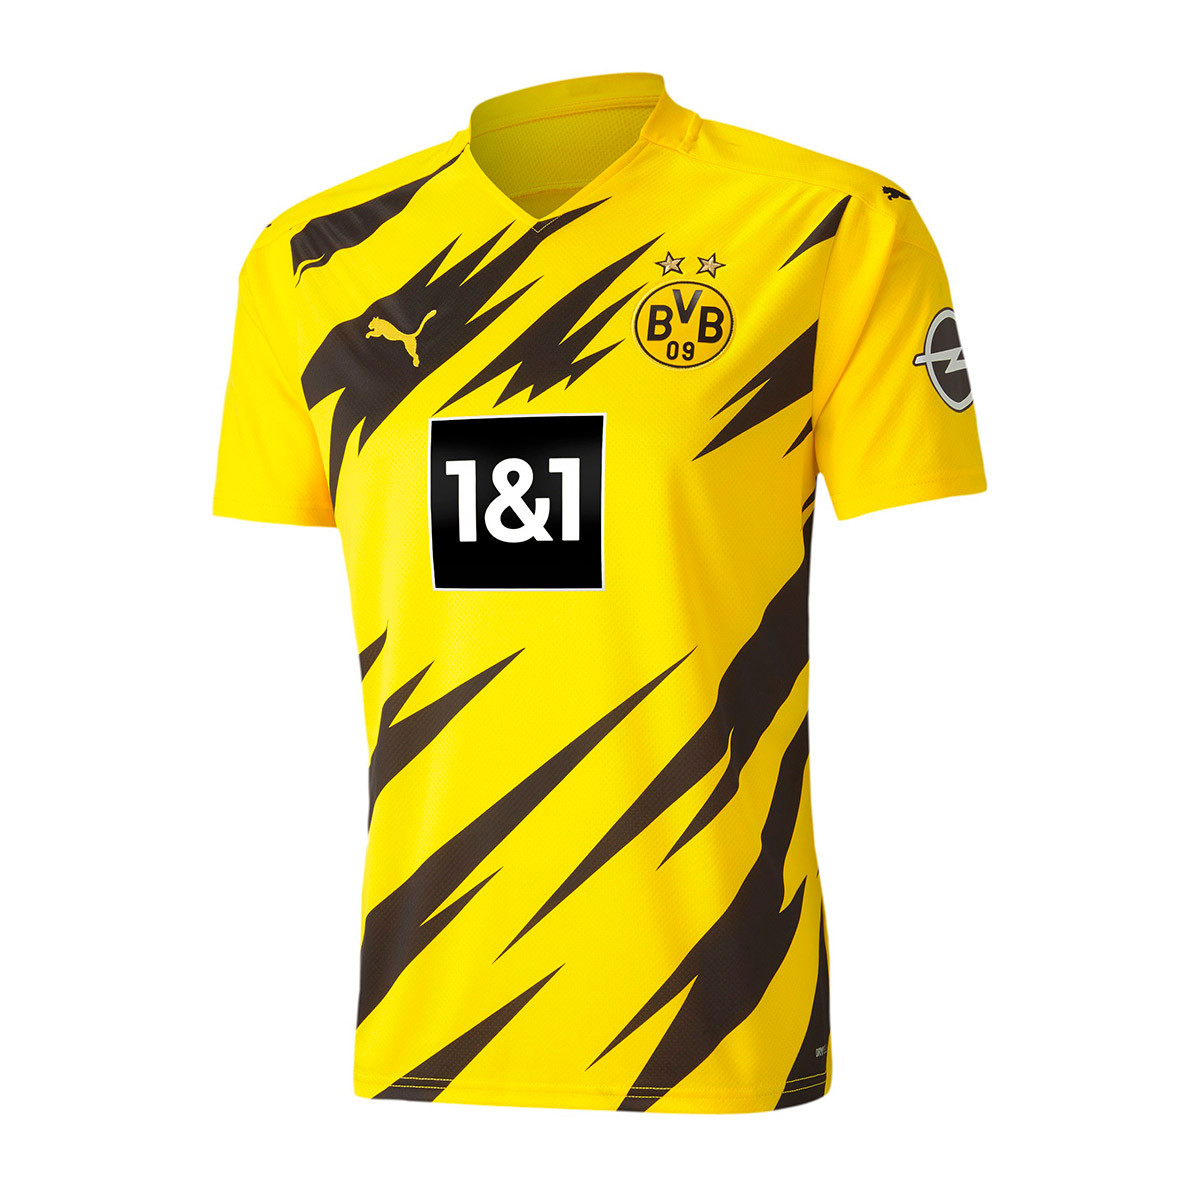 Jersey Puma Bvb Borussia Dortmund 2020 2021 Home Cyber Yellow Puma Black Football Store Futbol Emotion